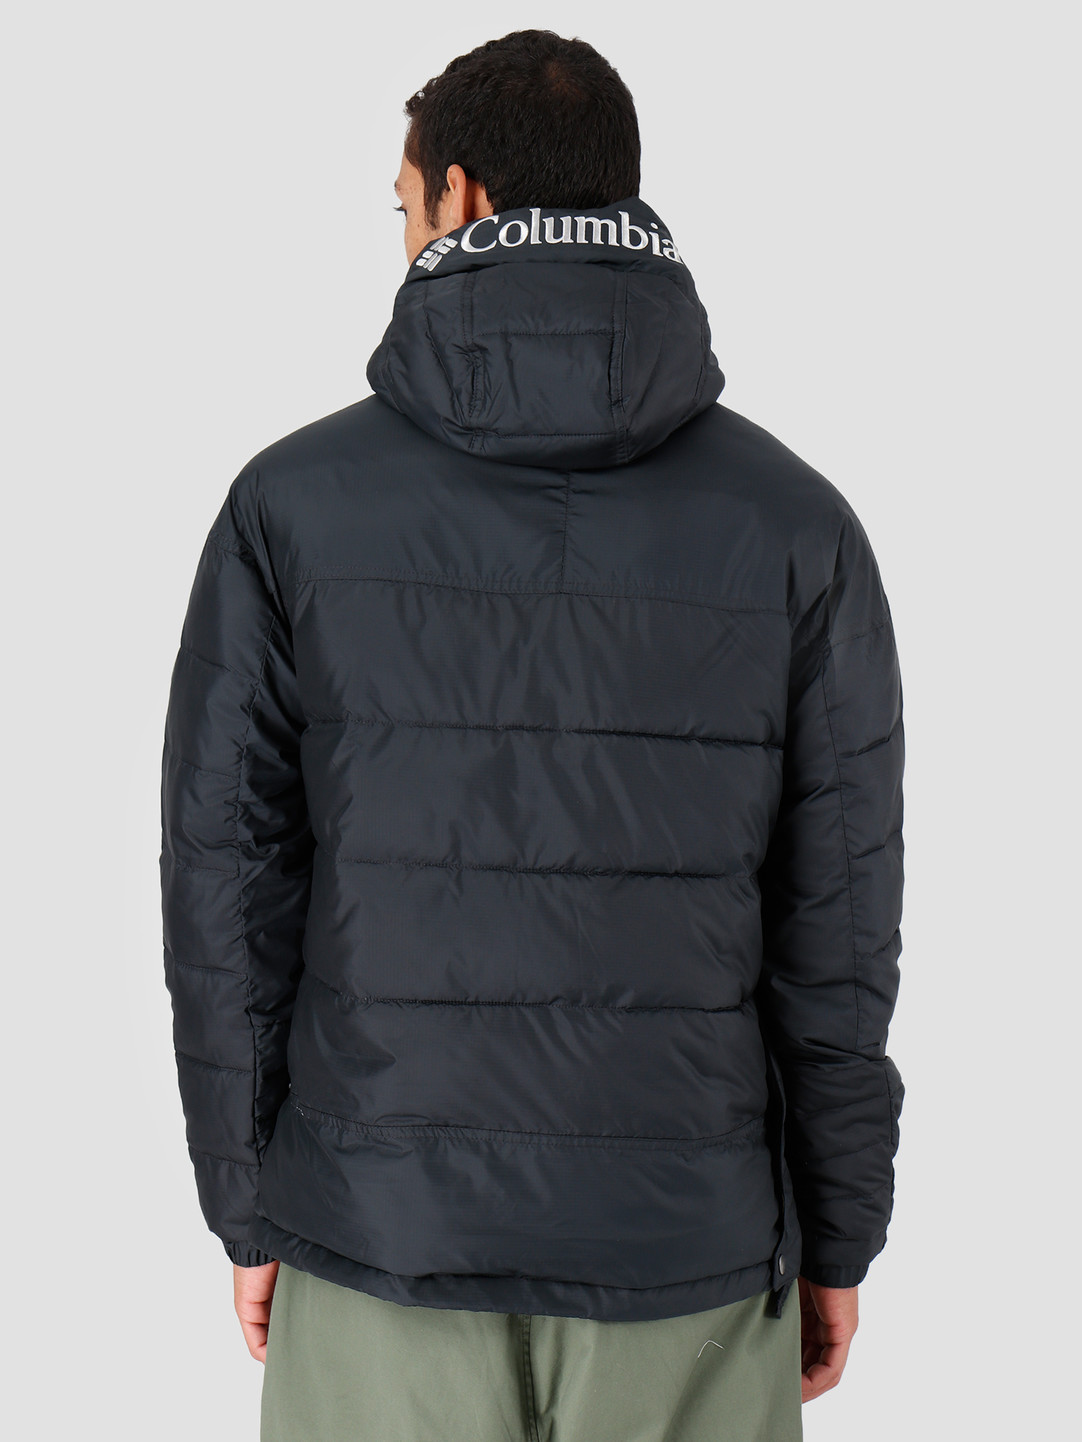 Columbia Columbia Columbia Lodge Pullover Jacket Black 1864422010